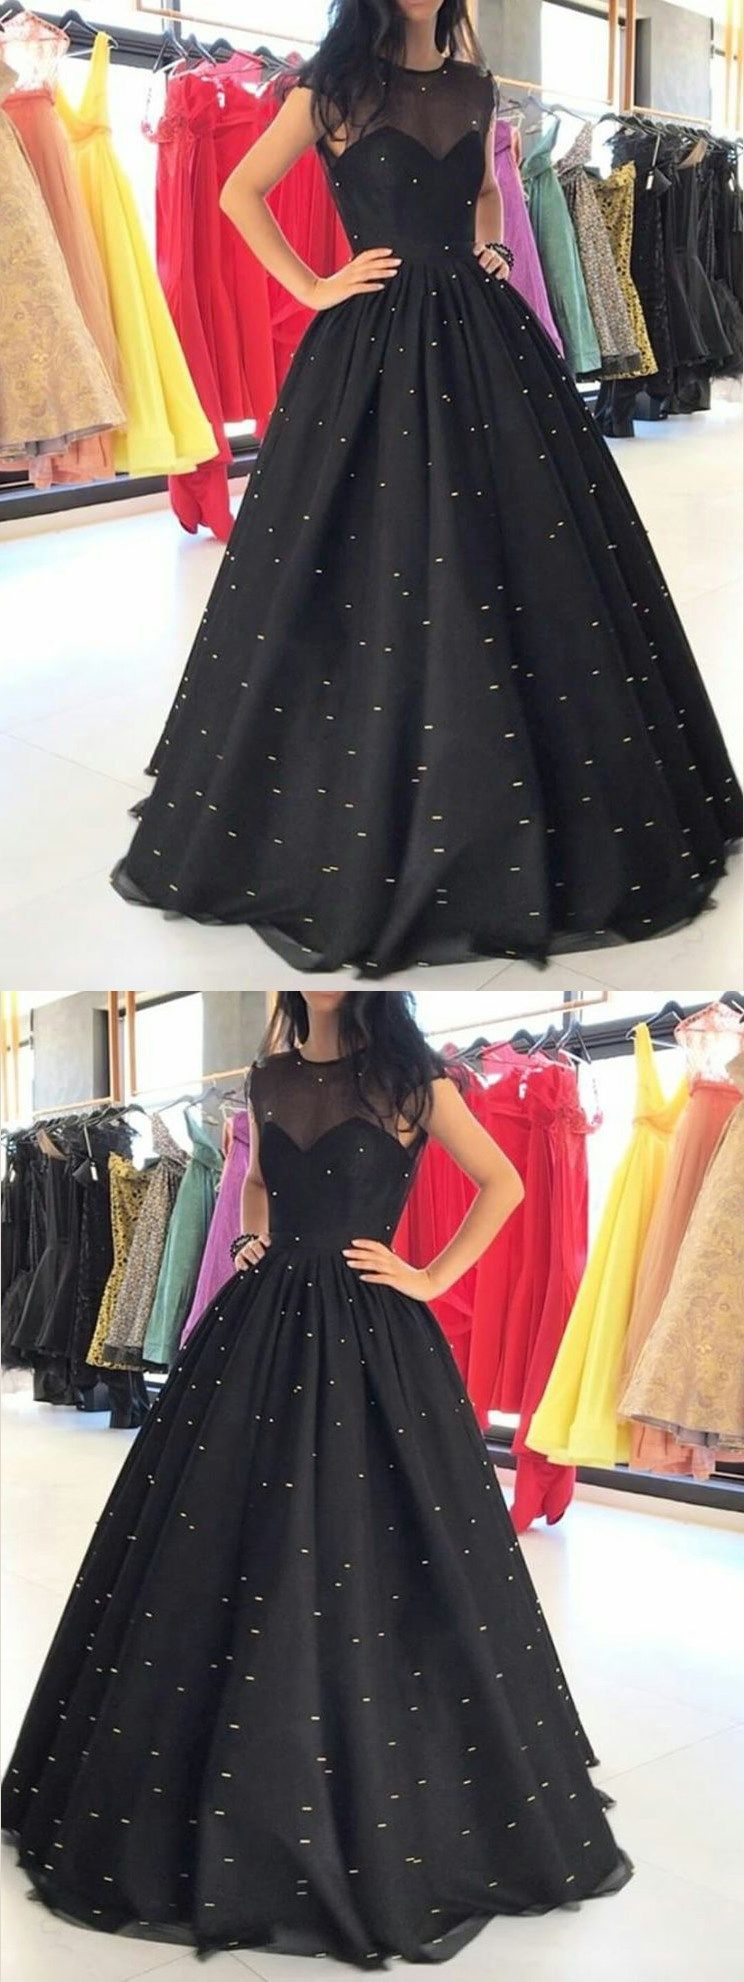 Black prom dresses pearl ball gown long sparkly prom dress jkl